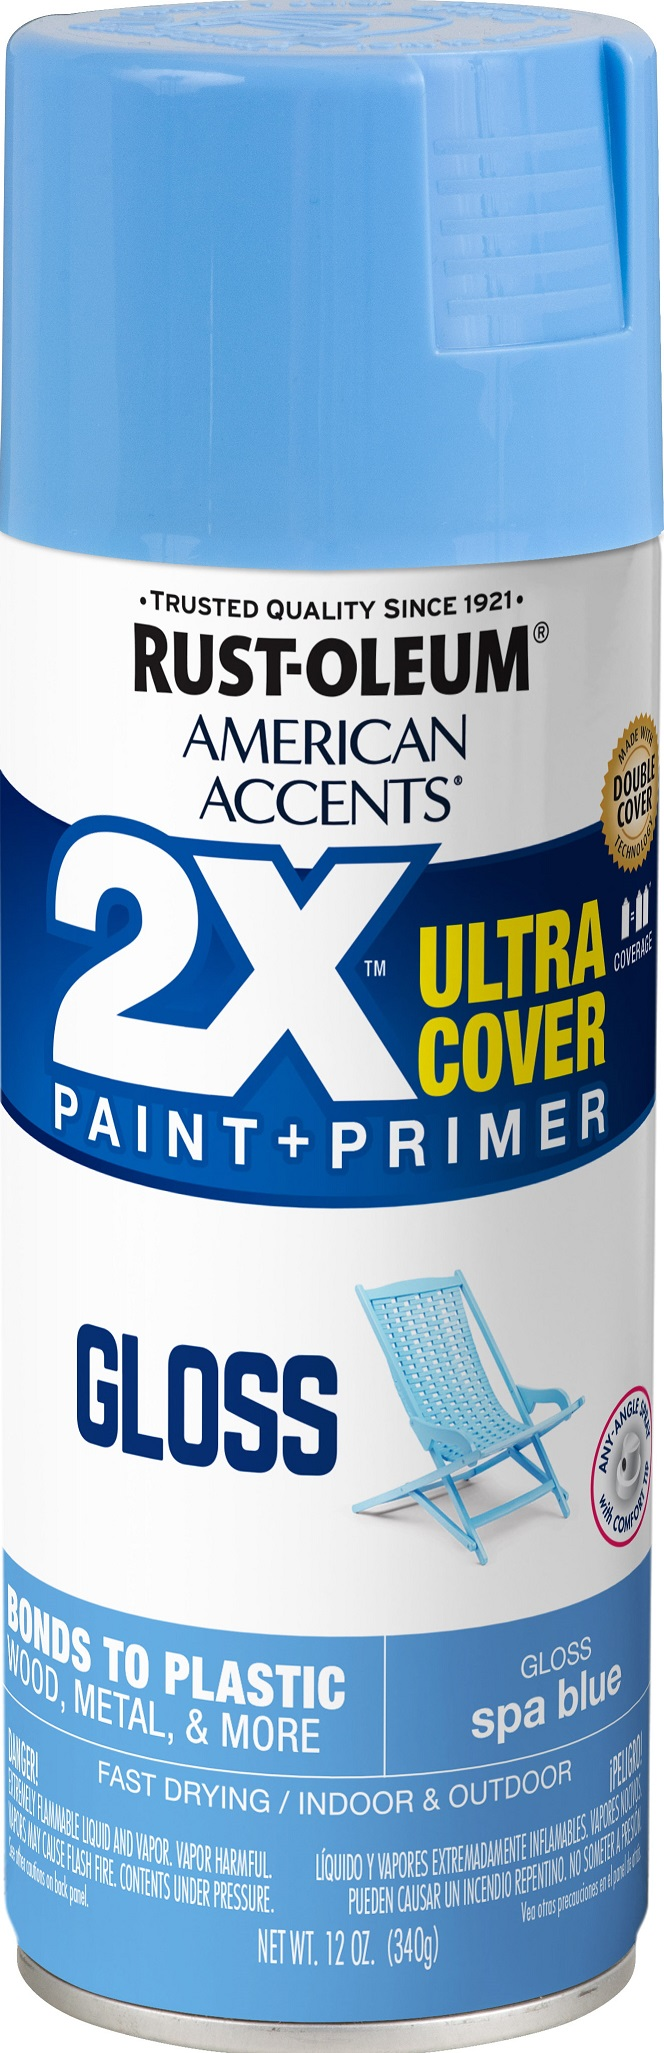 (3 Pack) Rust-Oleum American Accents Ultra Cover 2X Gloss Spa Blue Spray Paint and Primer in 1, 12 oz